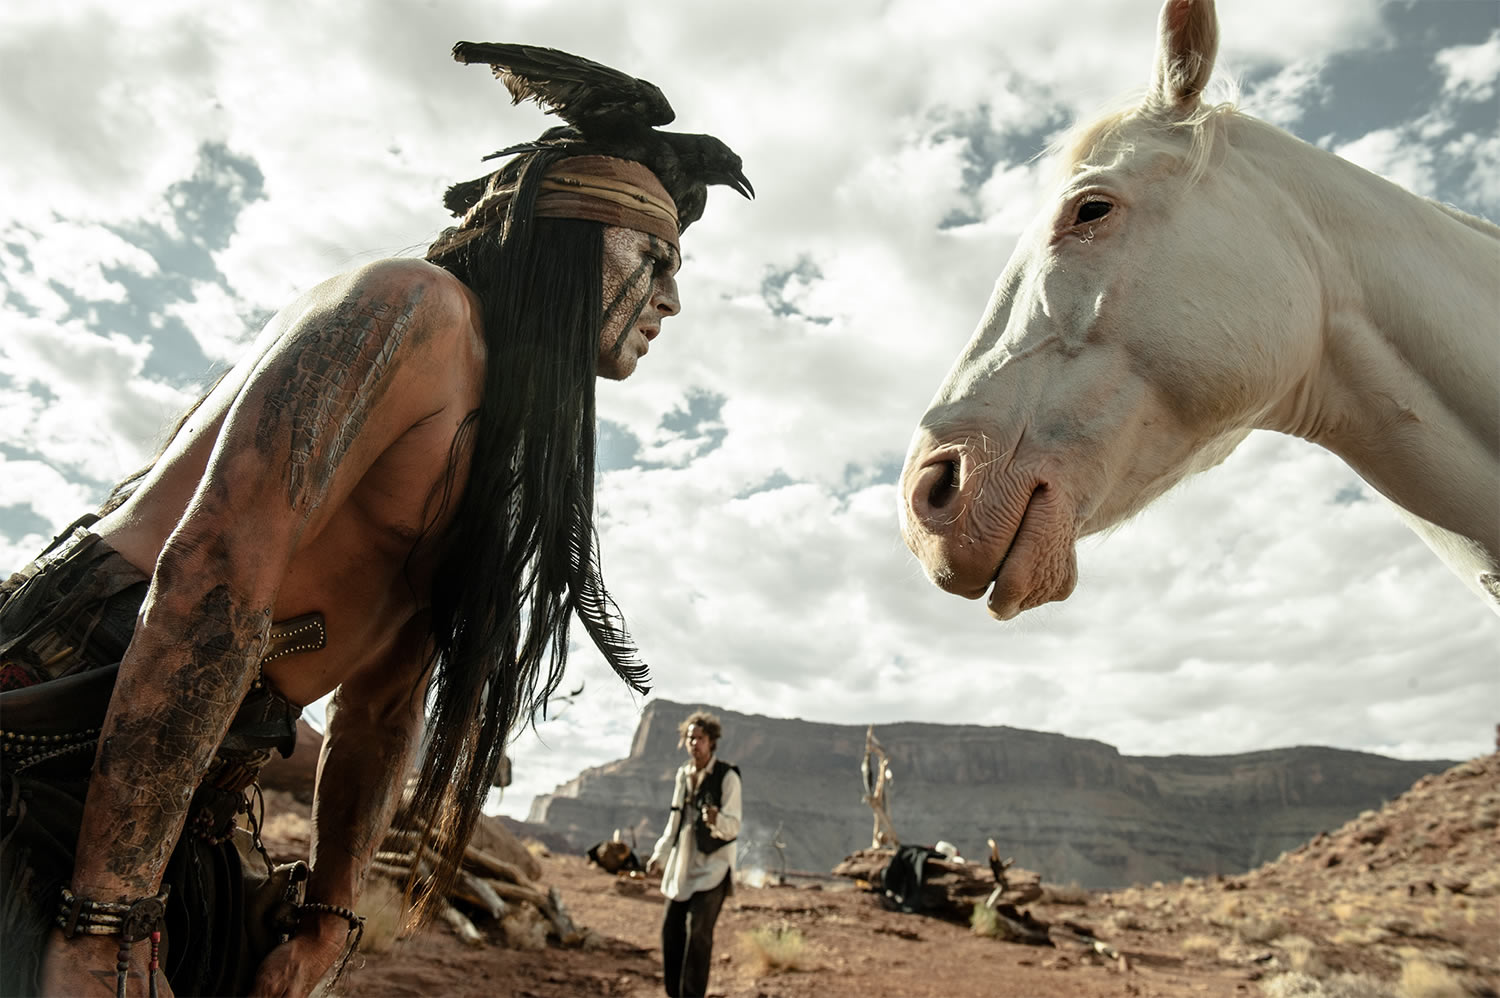 tonto with horse silver in the lone ranger